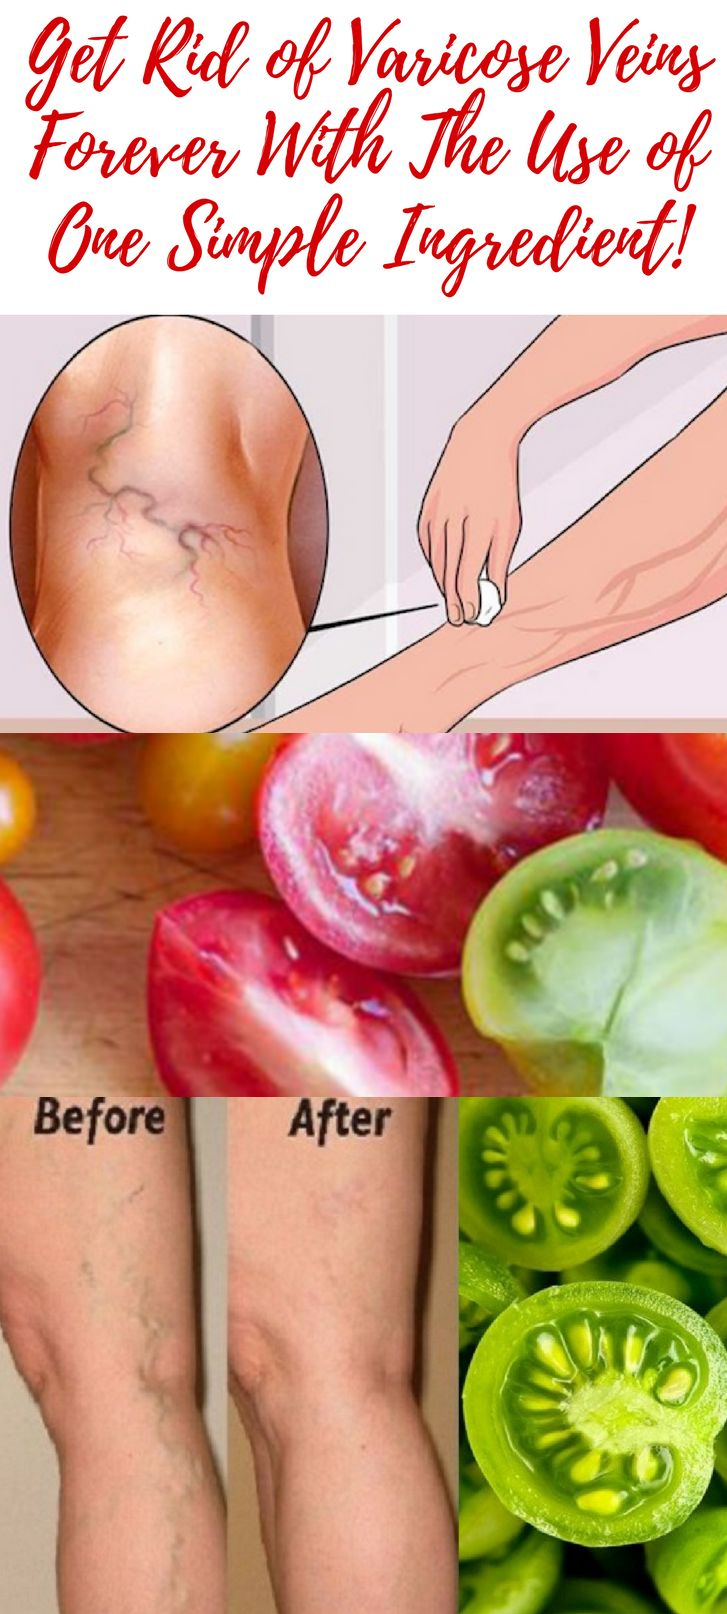 Get Rid of Varicose Veins Forever With The Use of One Simple Ingredient!